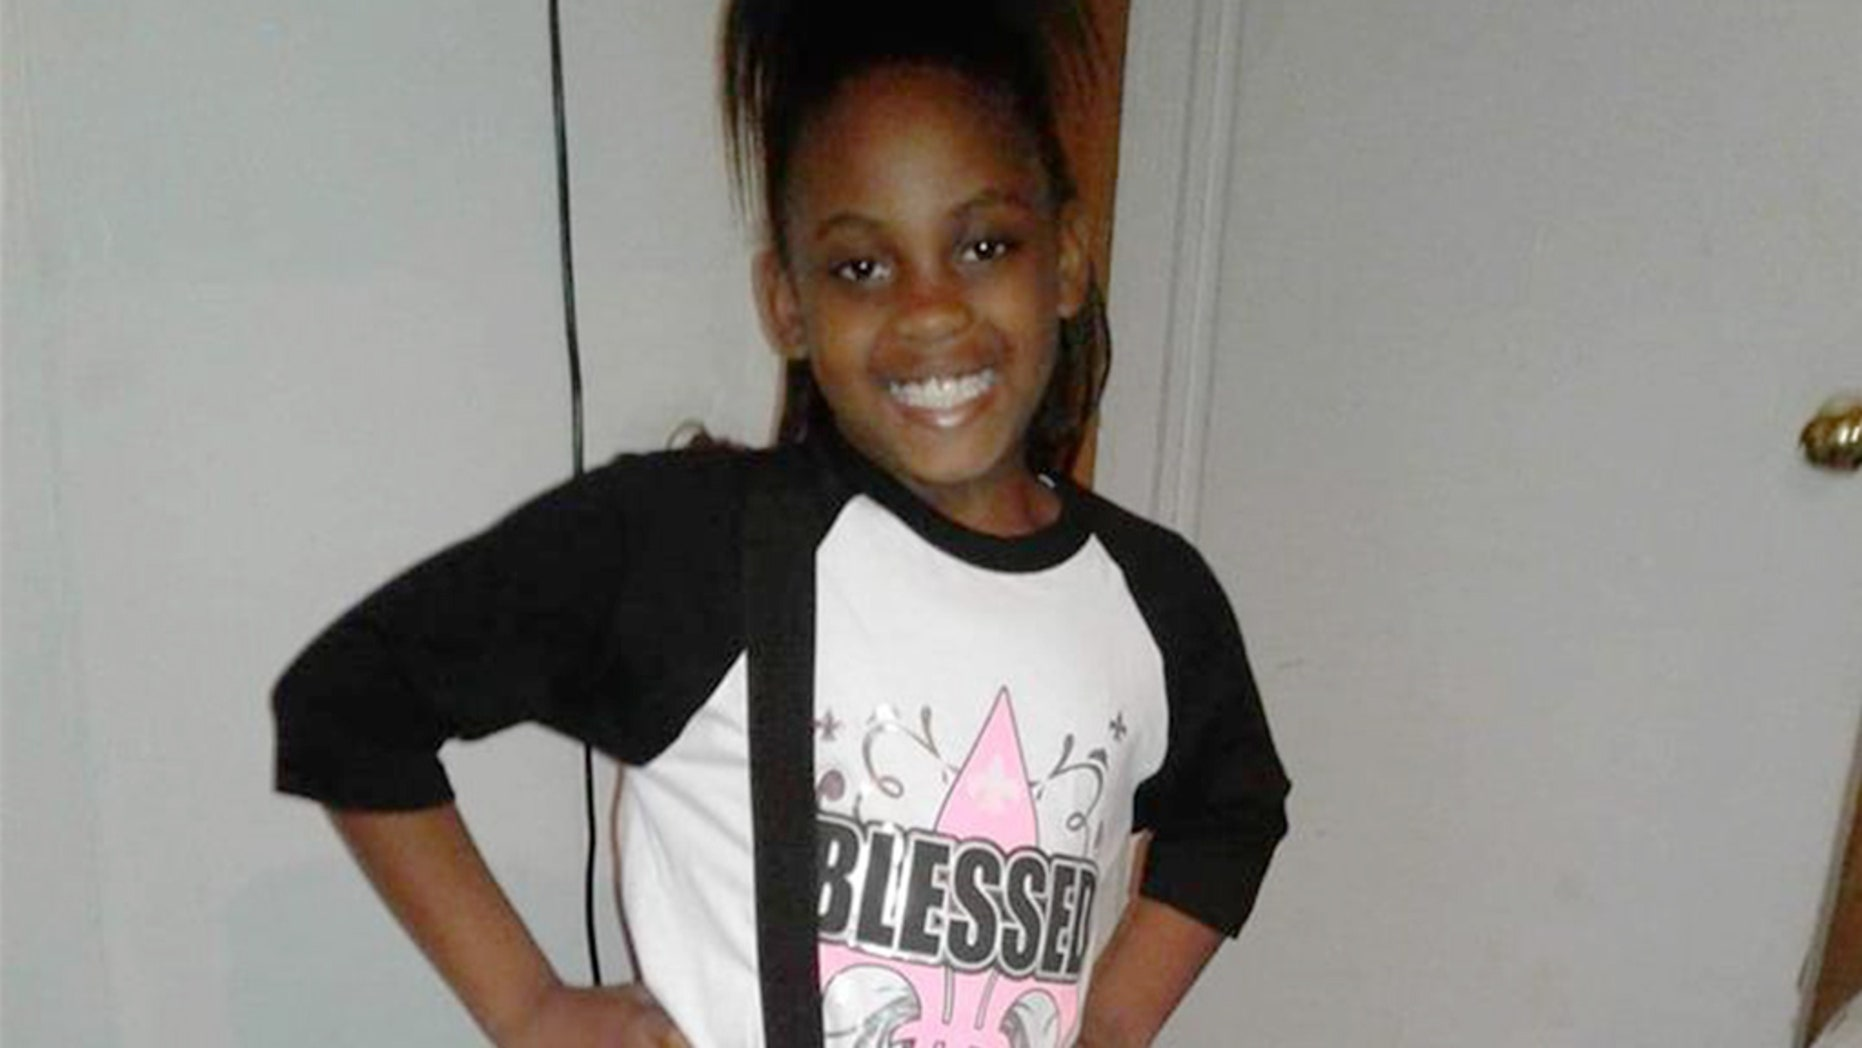 9-year-old kills self after racist taunts from class: family